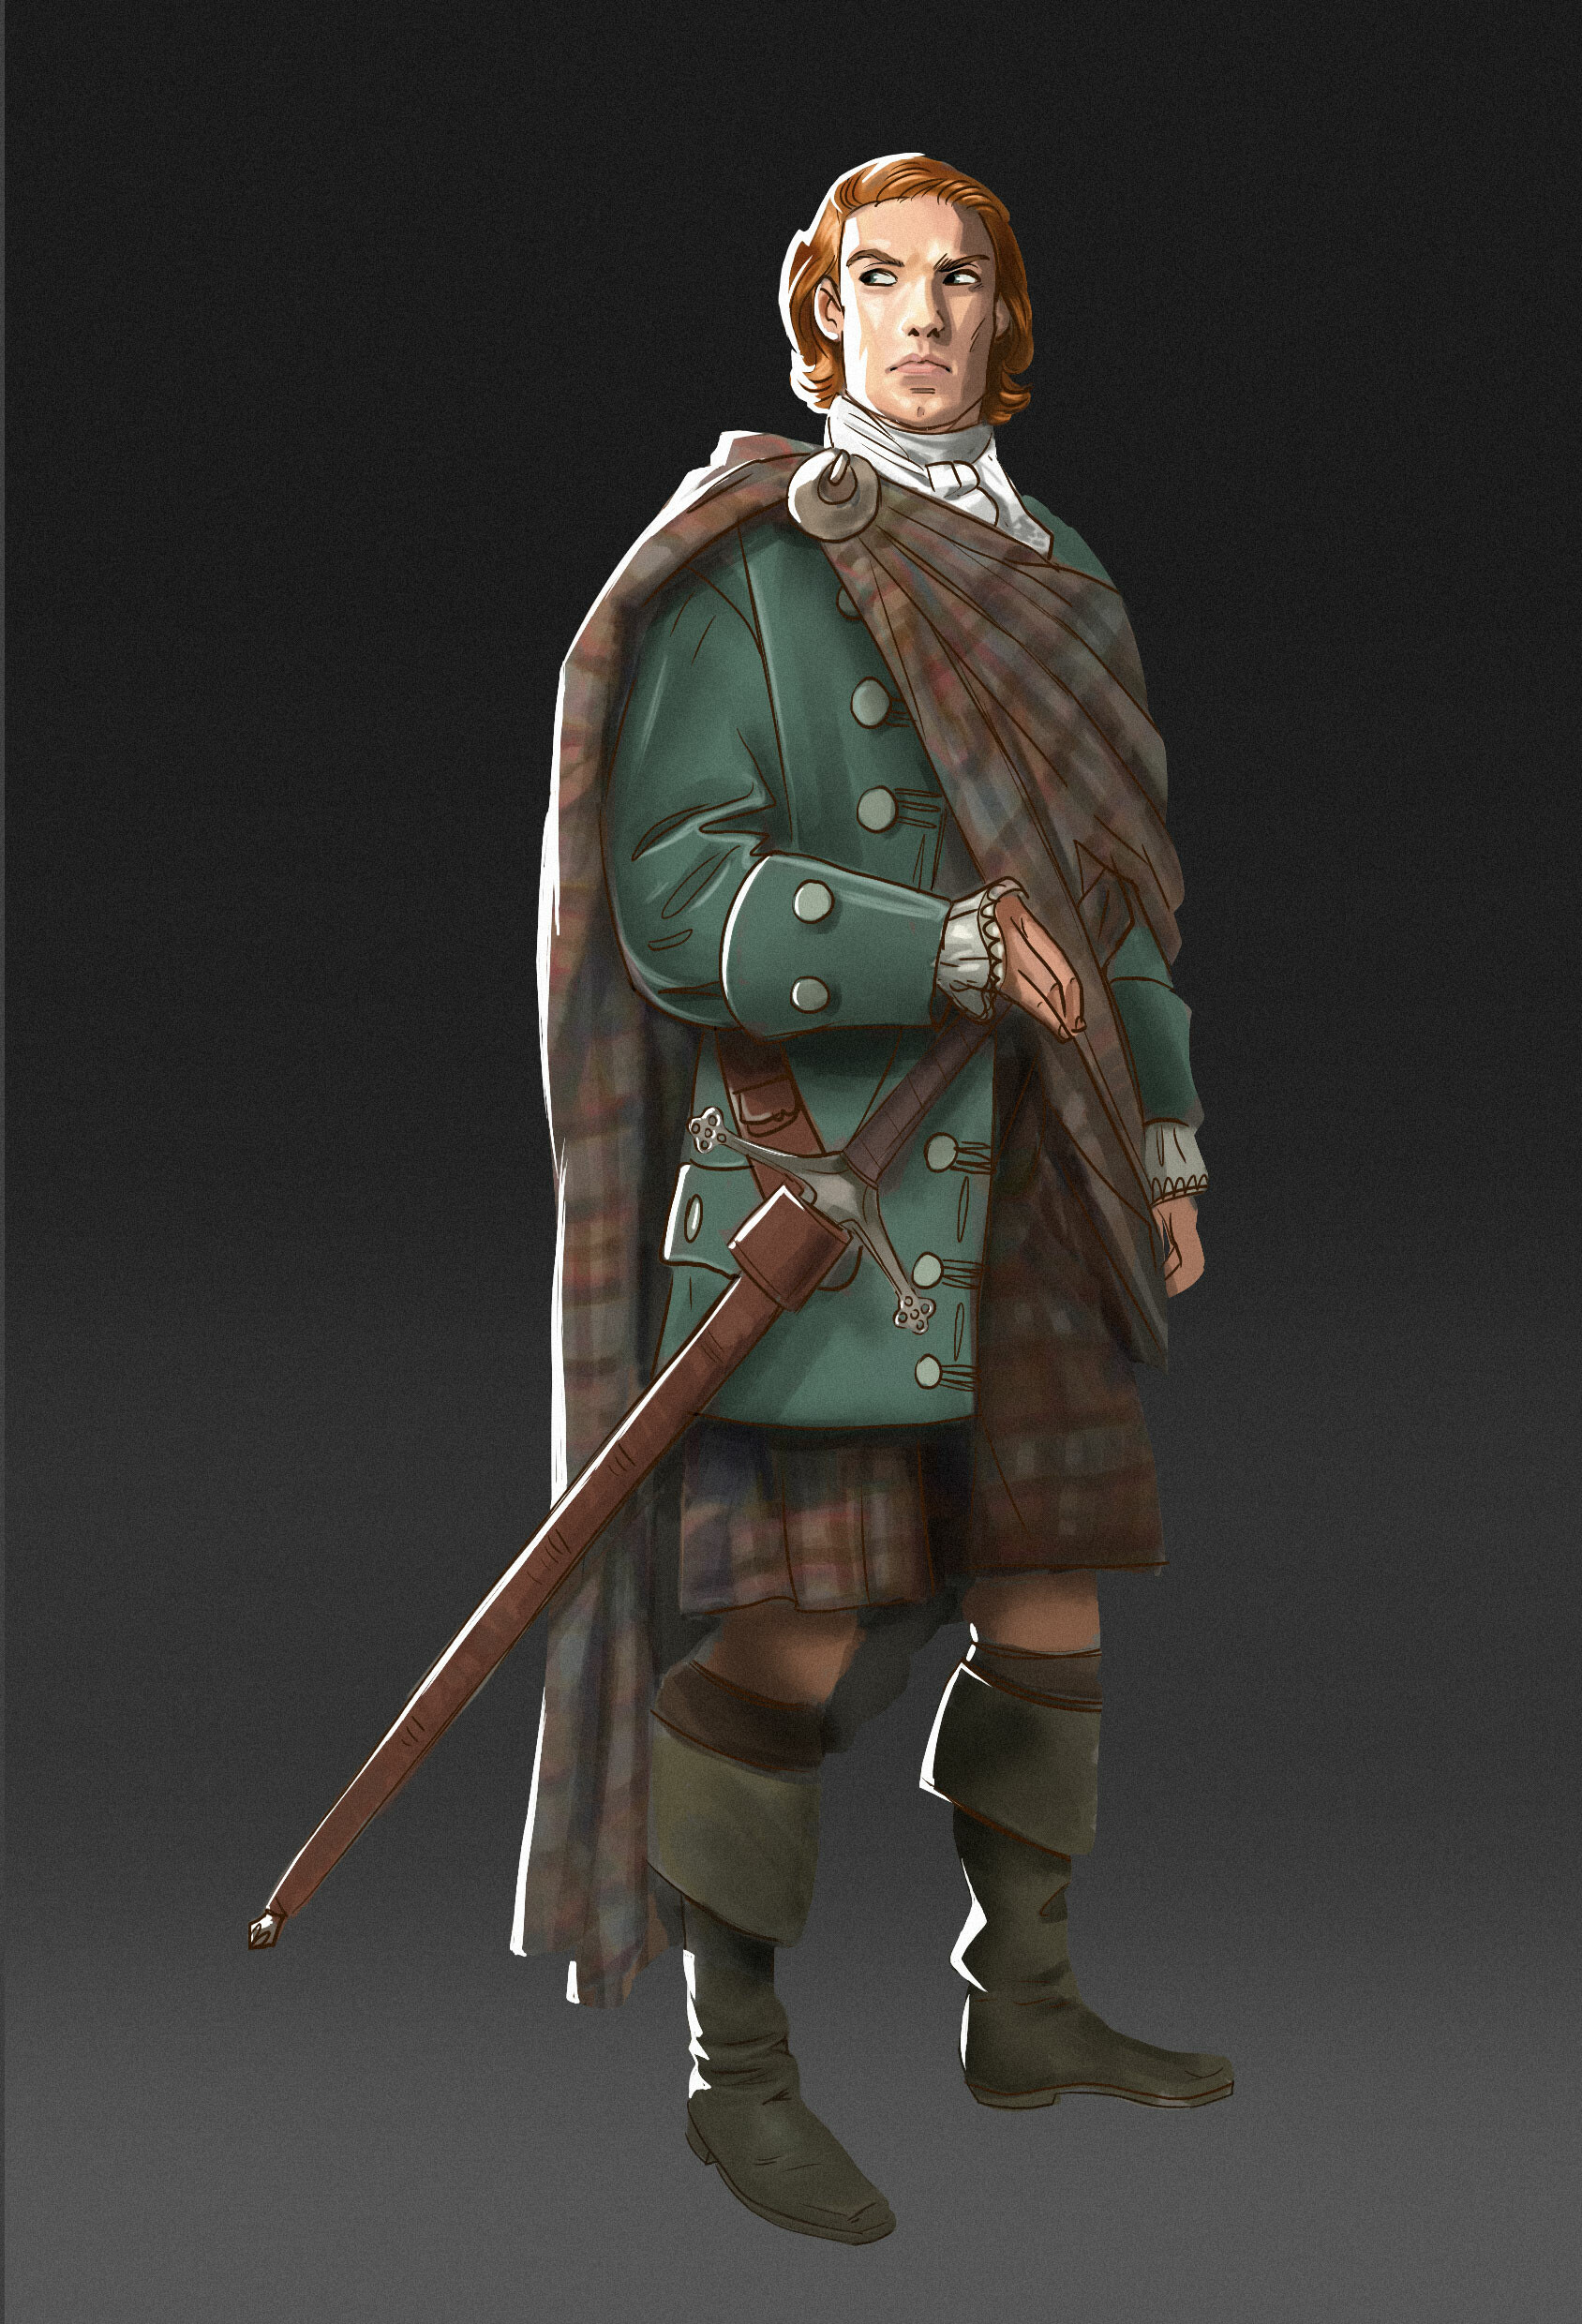 A scottish warrior